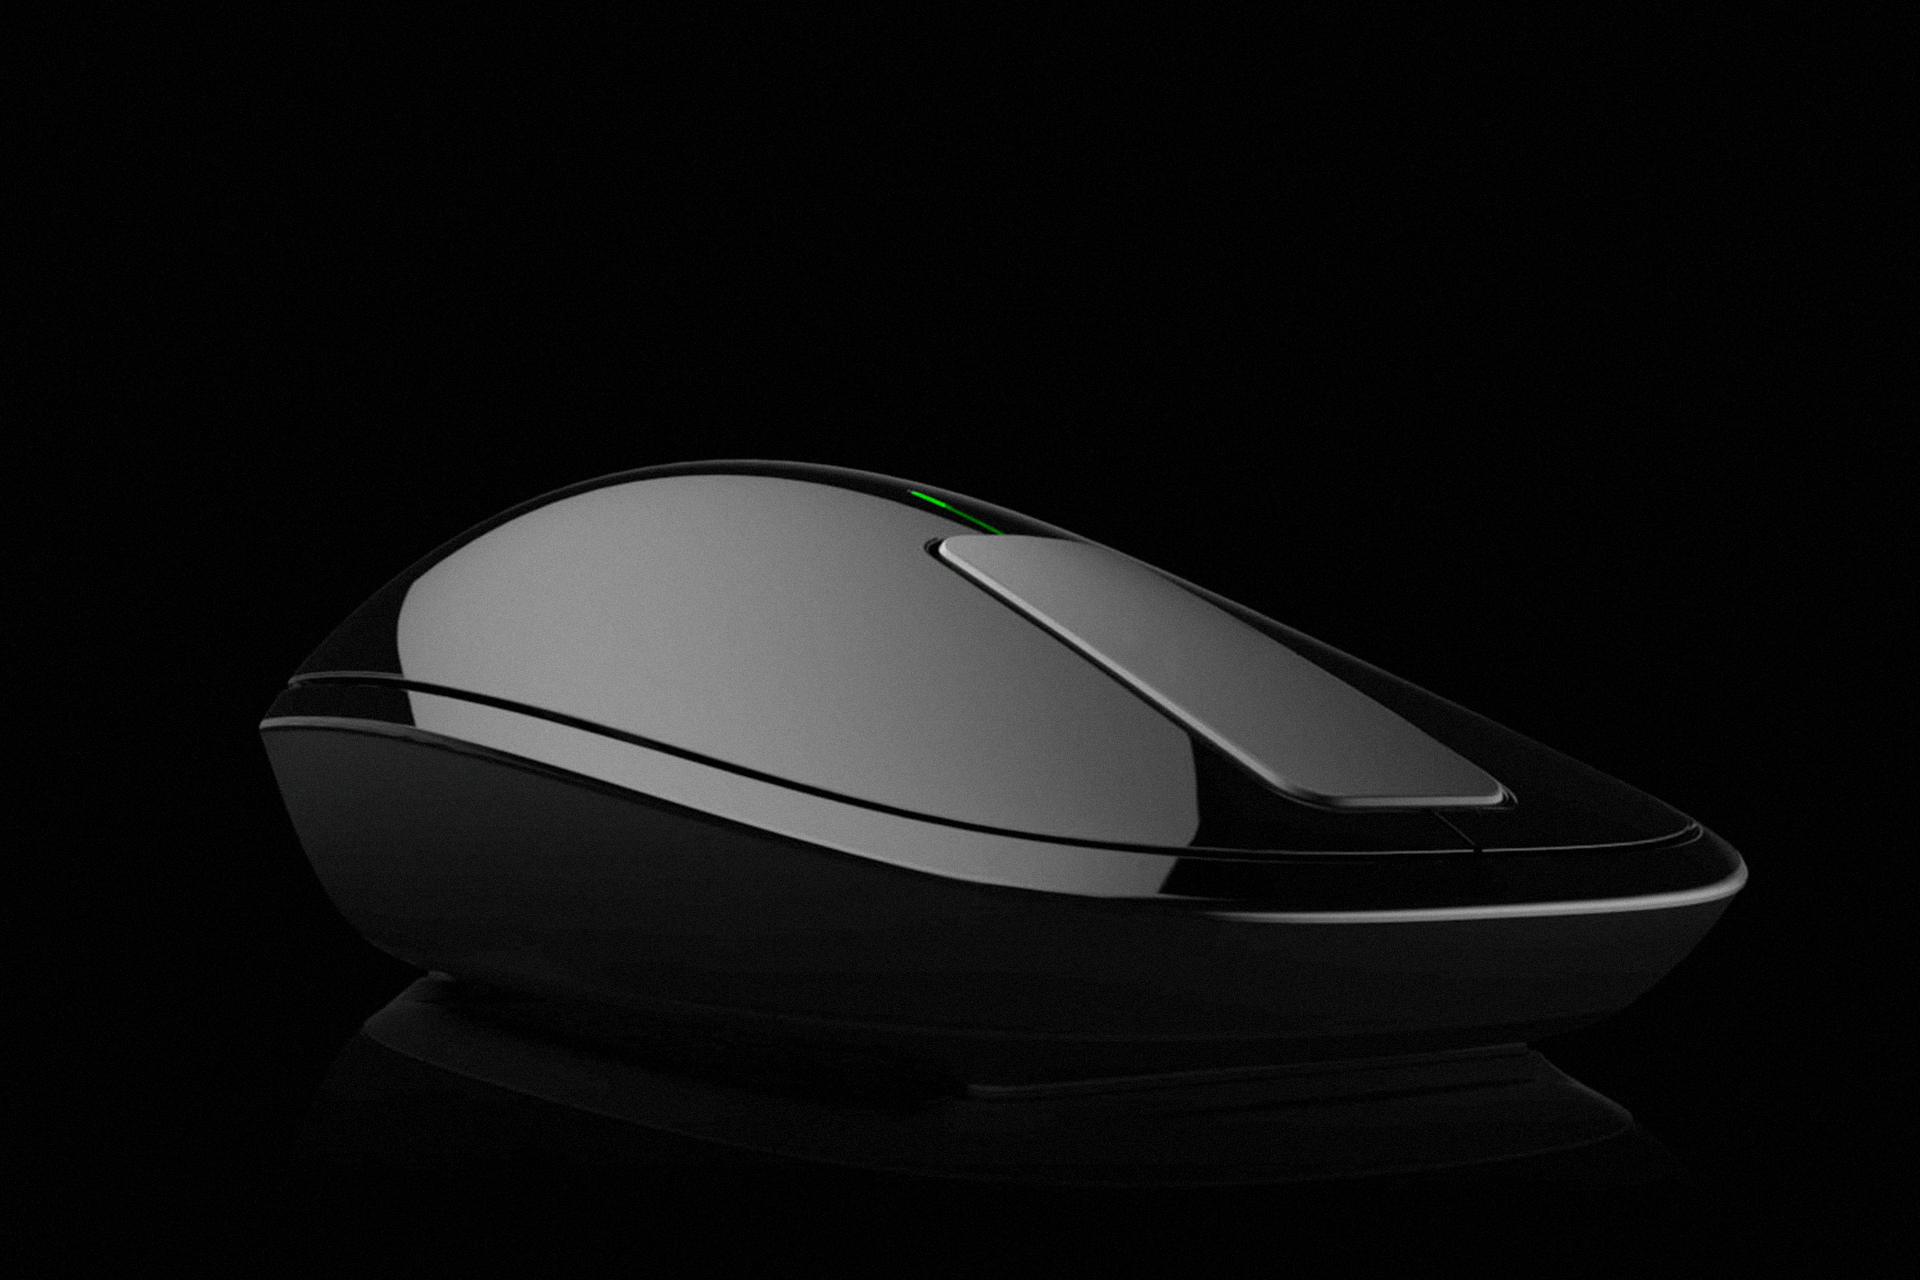 Microsoft Explorer Touch Mouse render